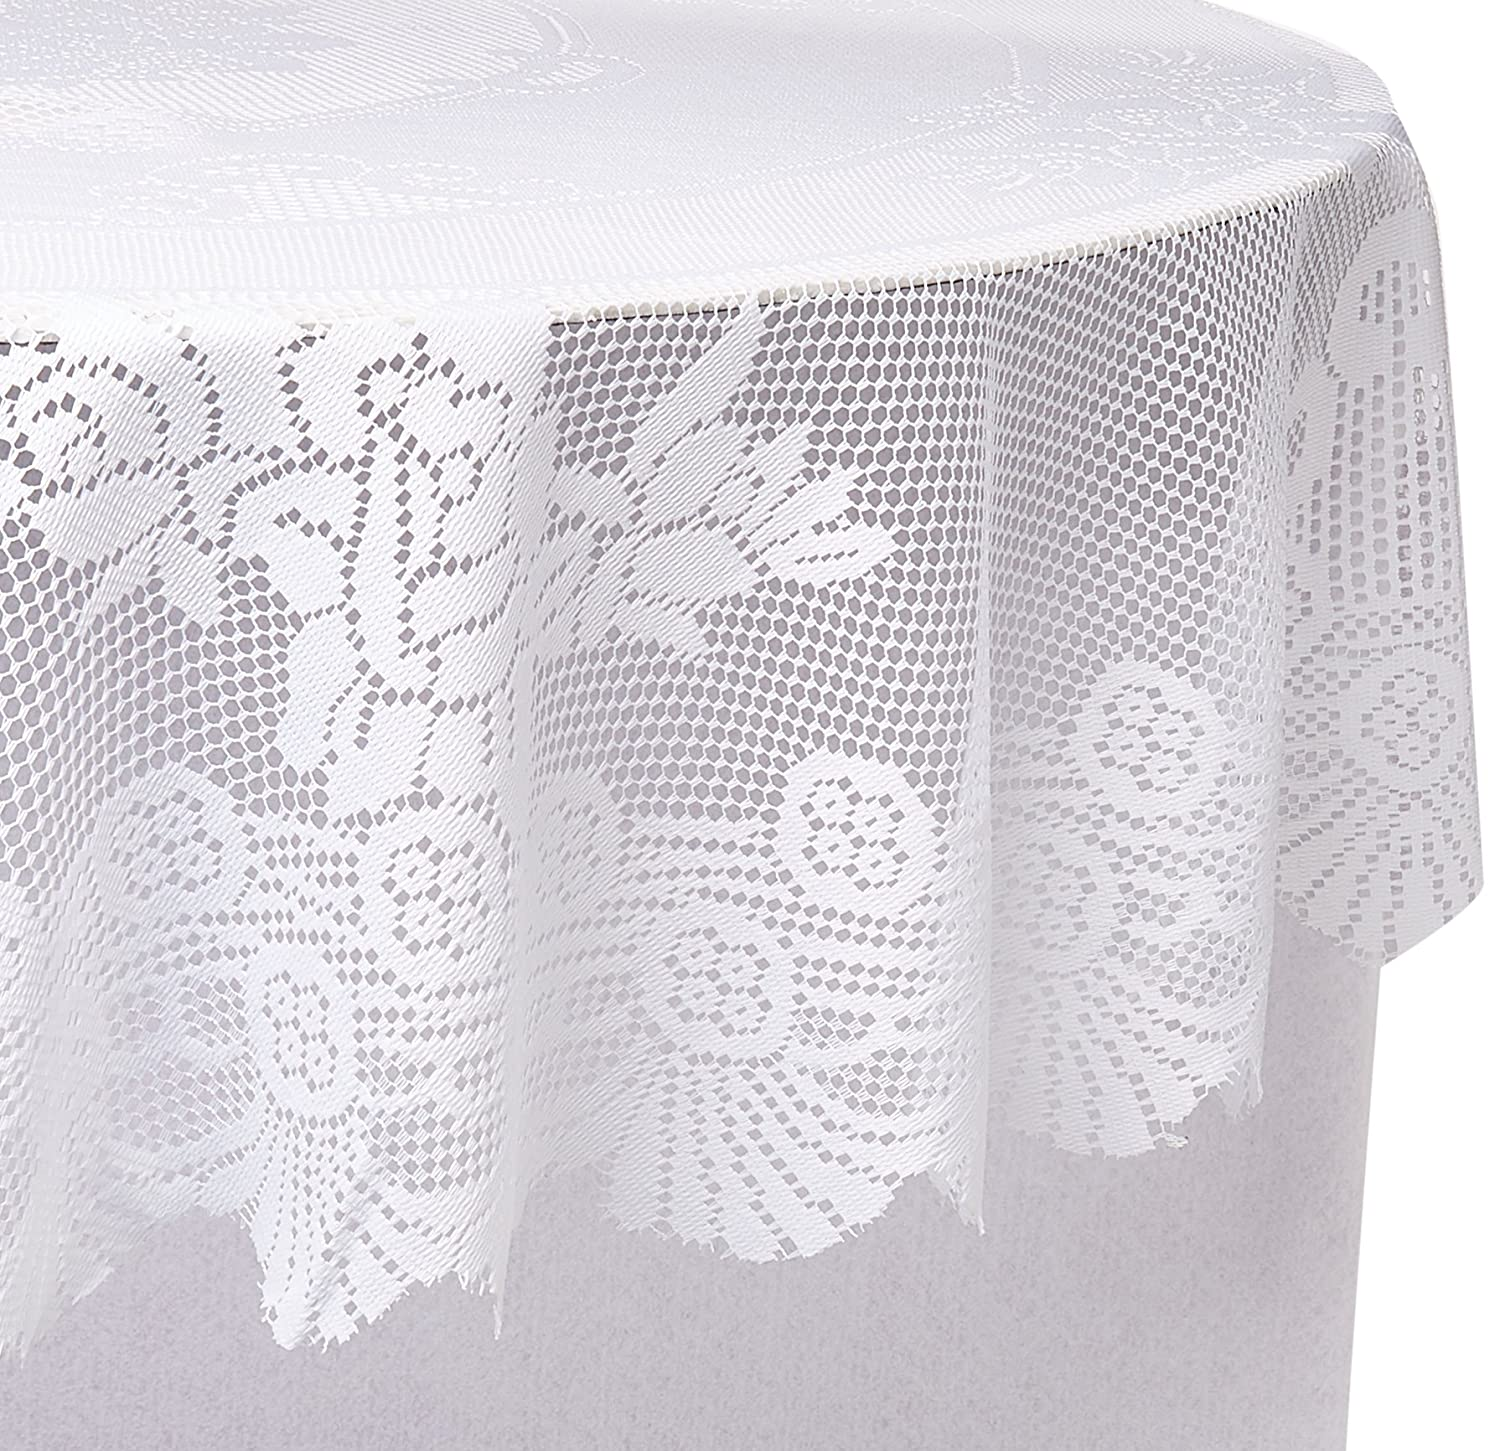 70 Inch Round Table Cloth.Ritz 100 Polyester Linen Tablecloth Easy Care Floral Lace Round 70 Inch Round White